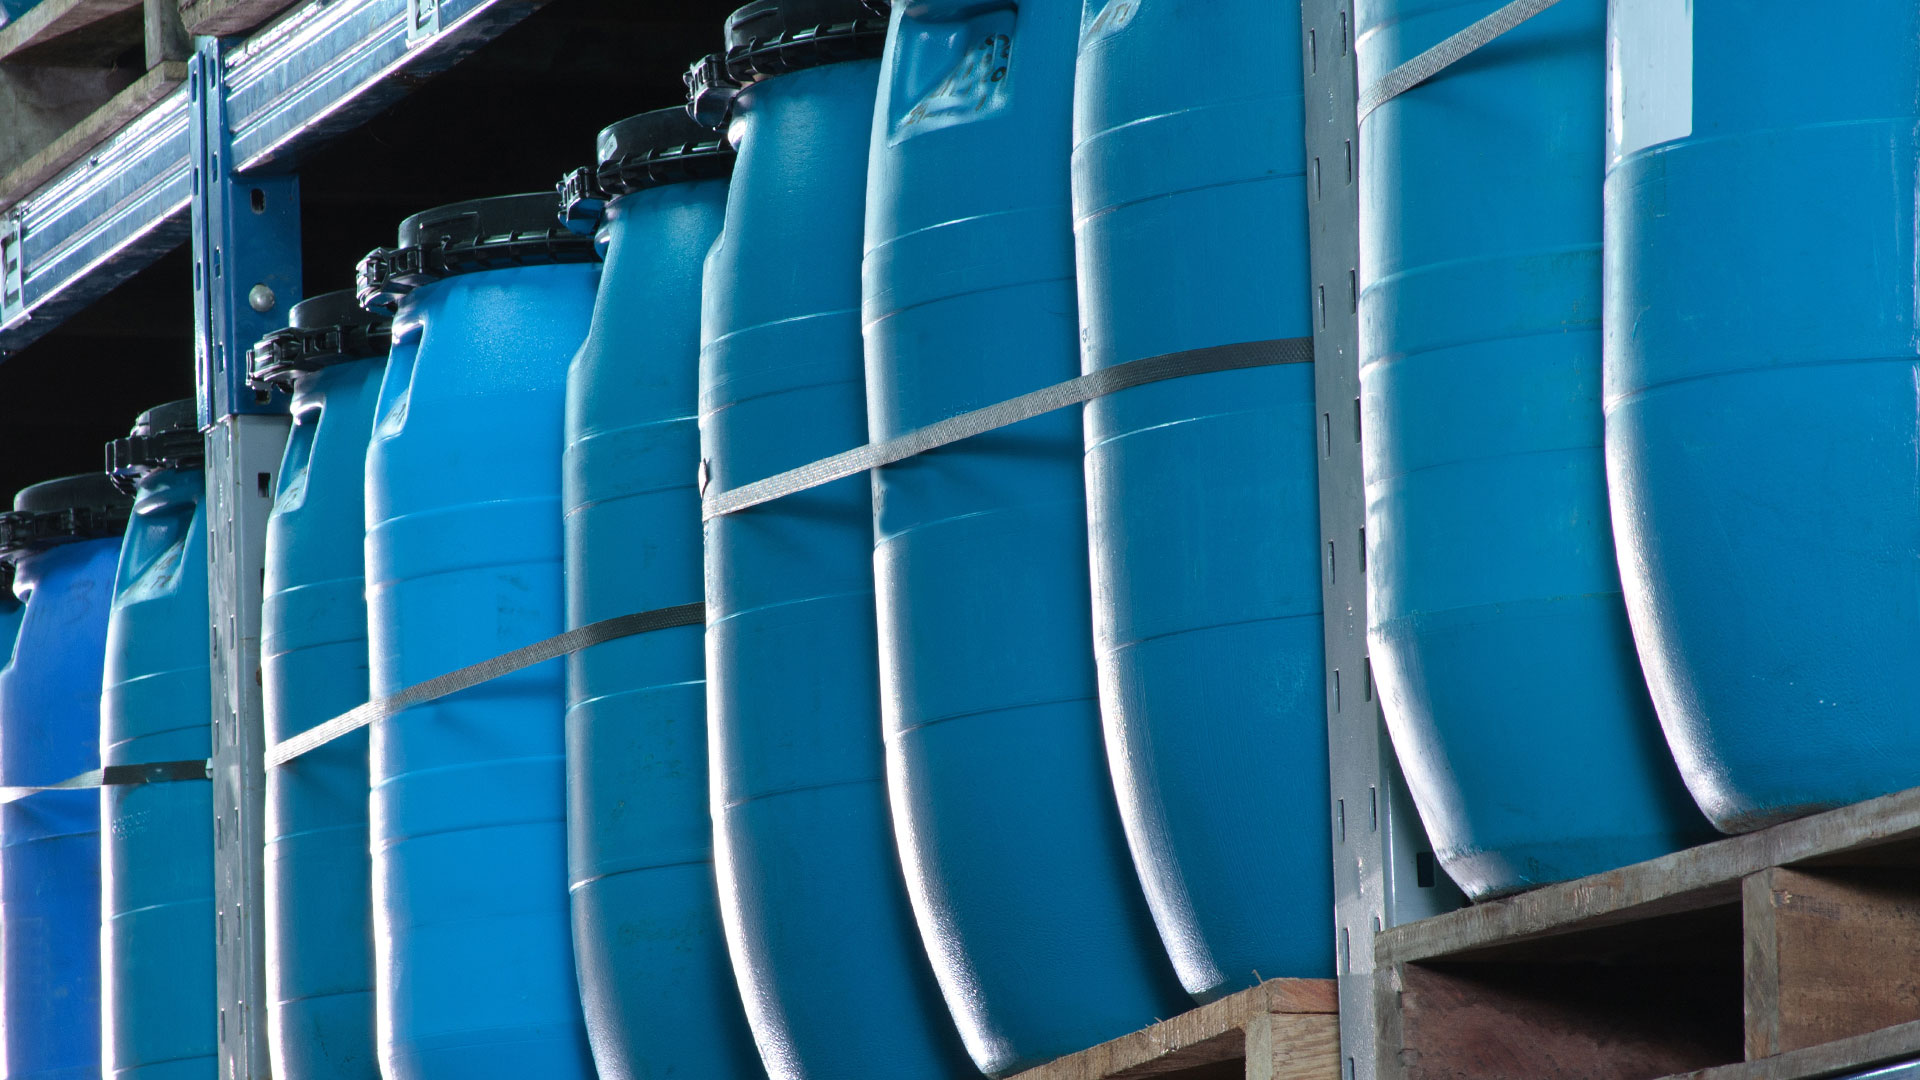 blue plastic storage drums